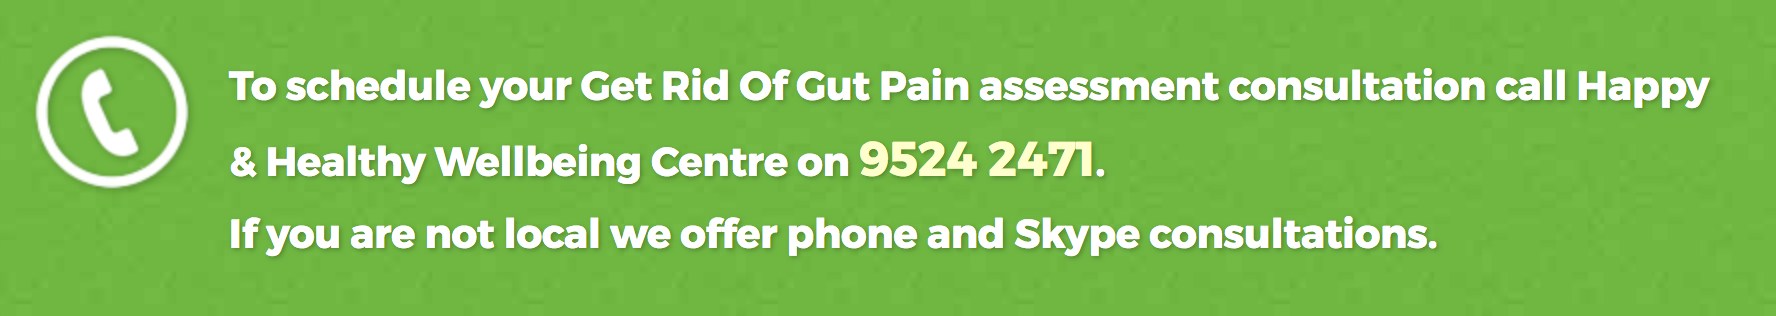 gut-pain-assessment